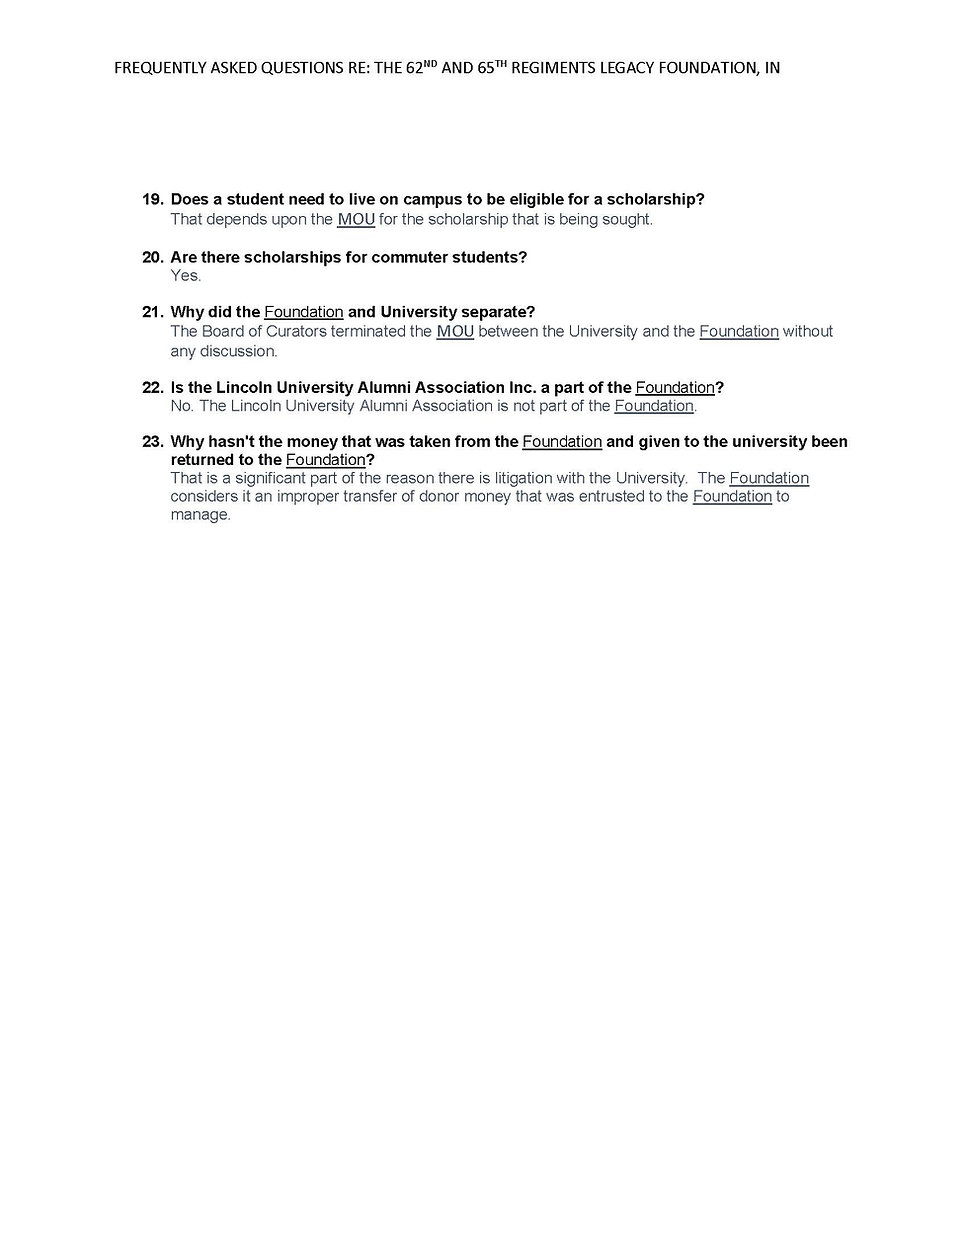 FAQs-Final Version Rev Nov 22, 2019_Page